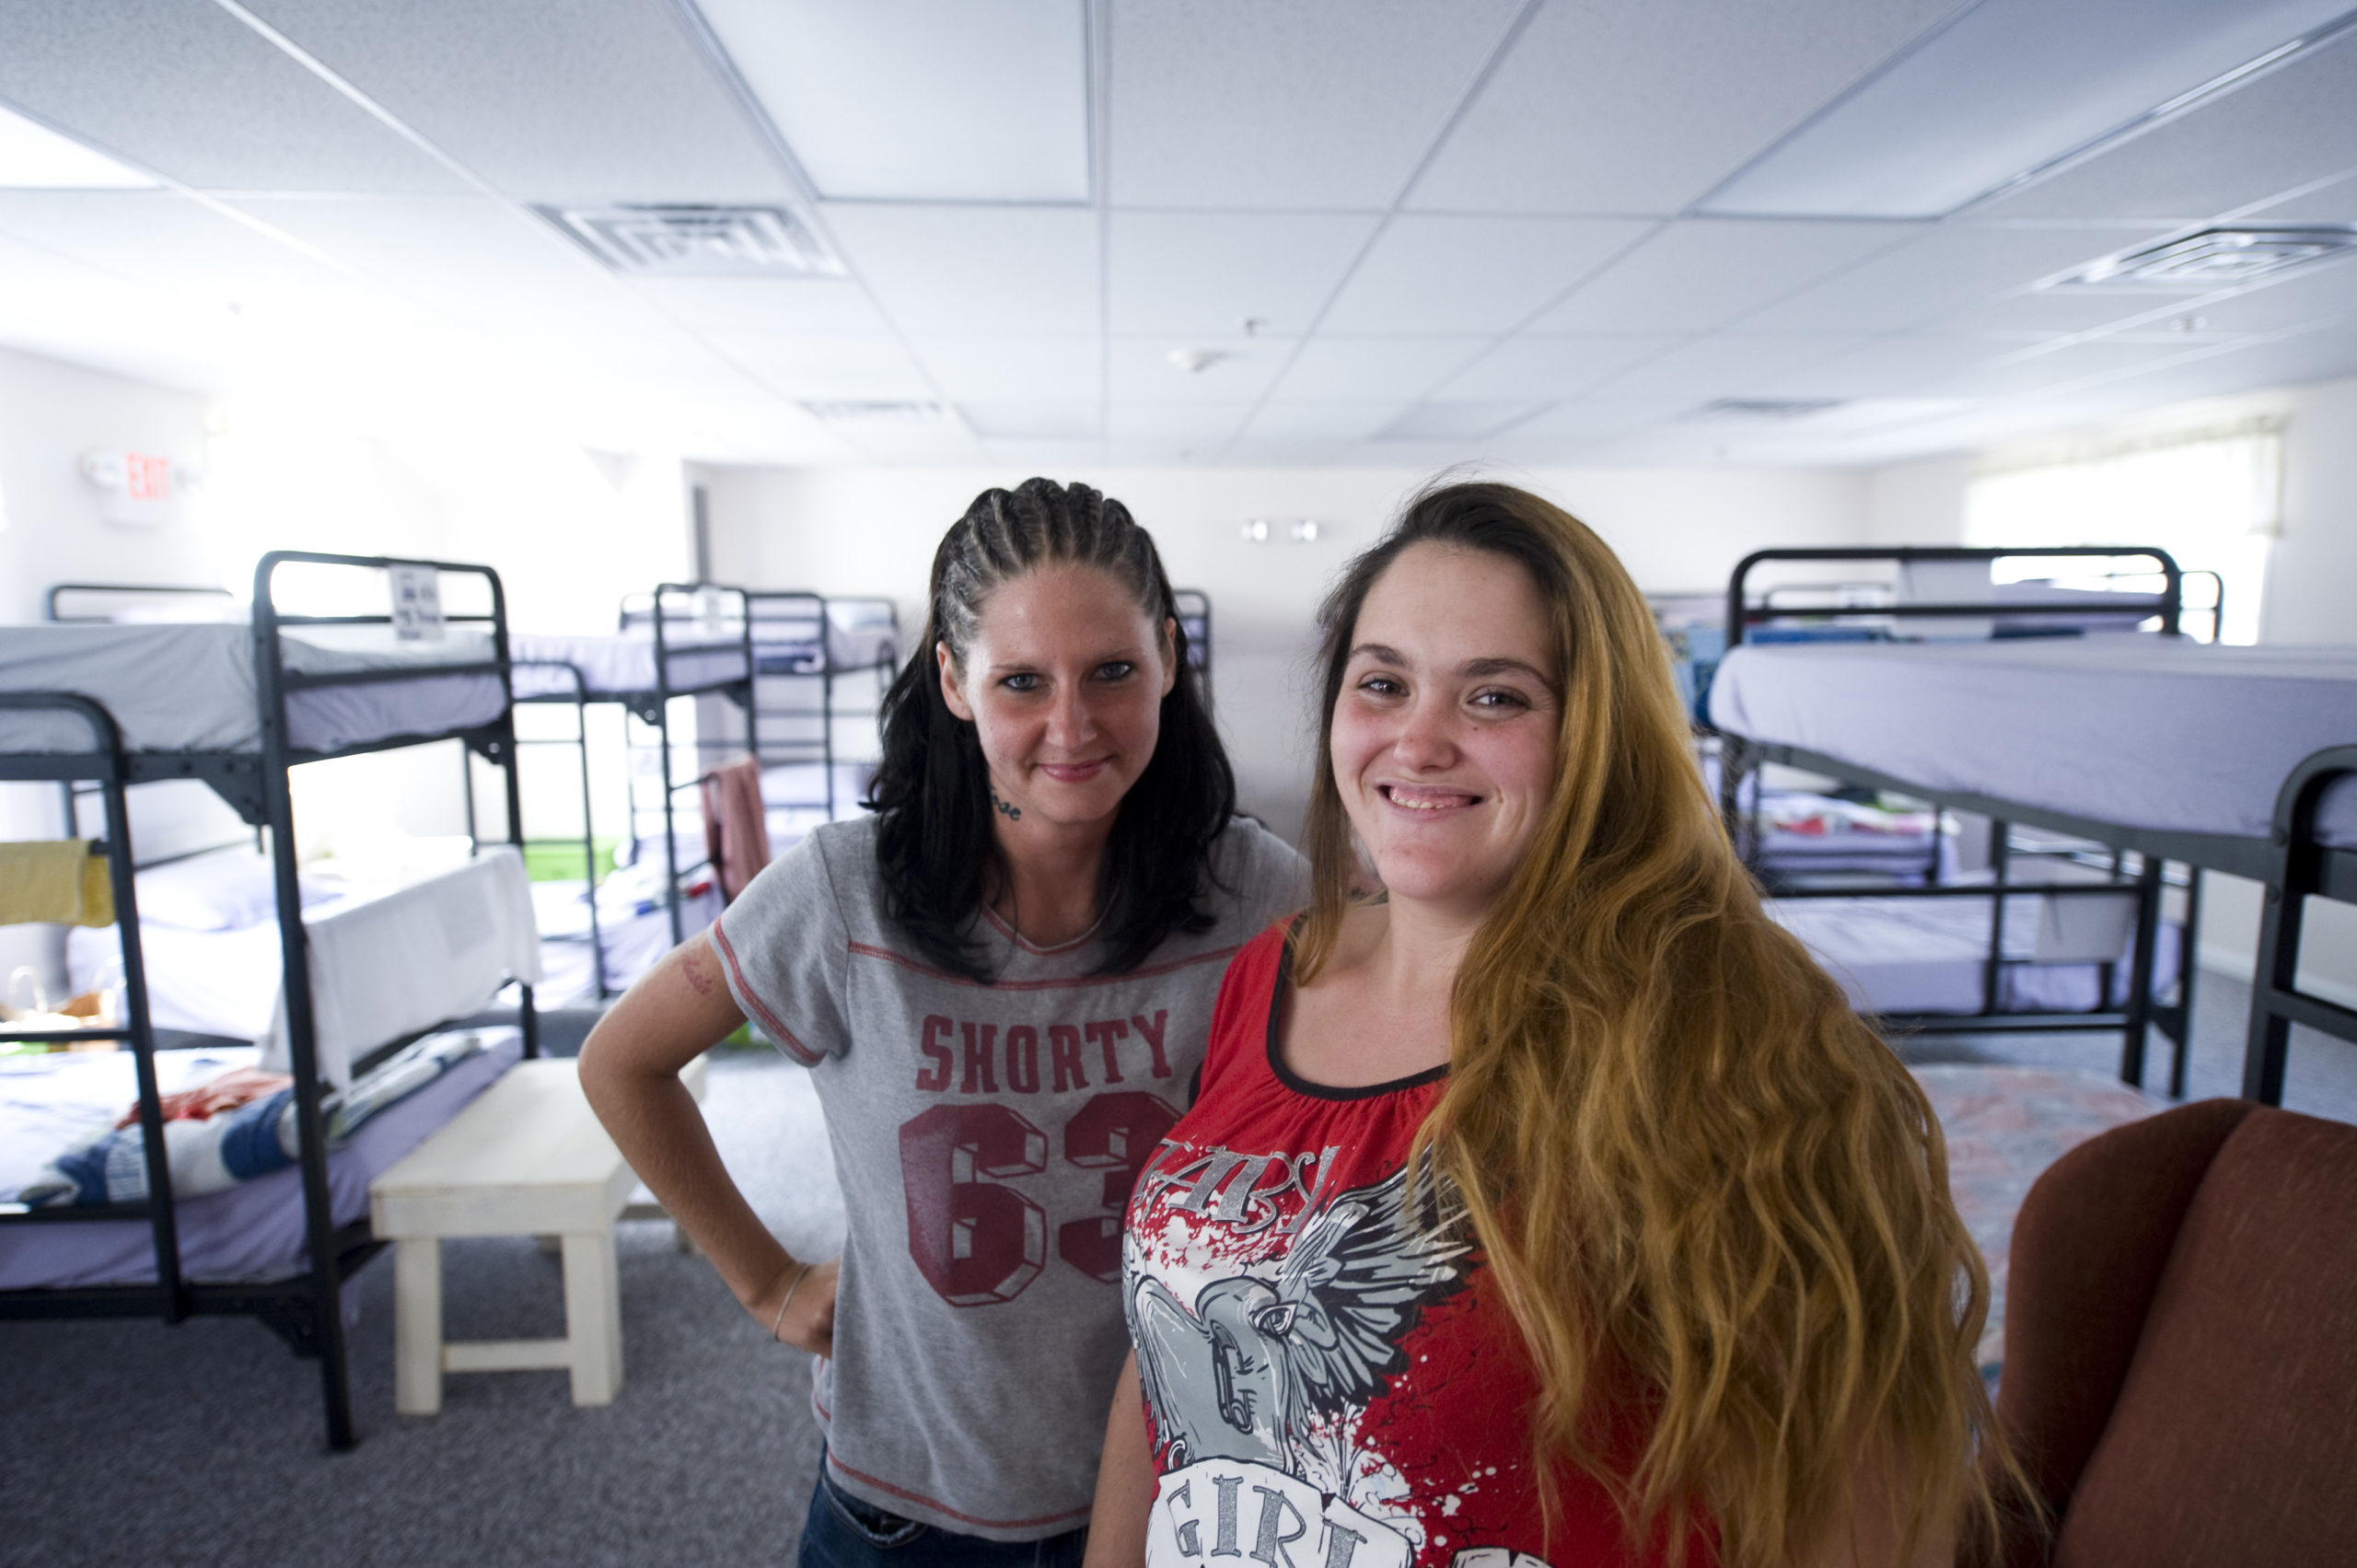 More than a shelter — women find support for the soul at LifePath 1